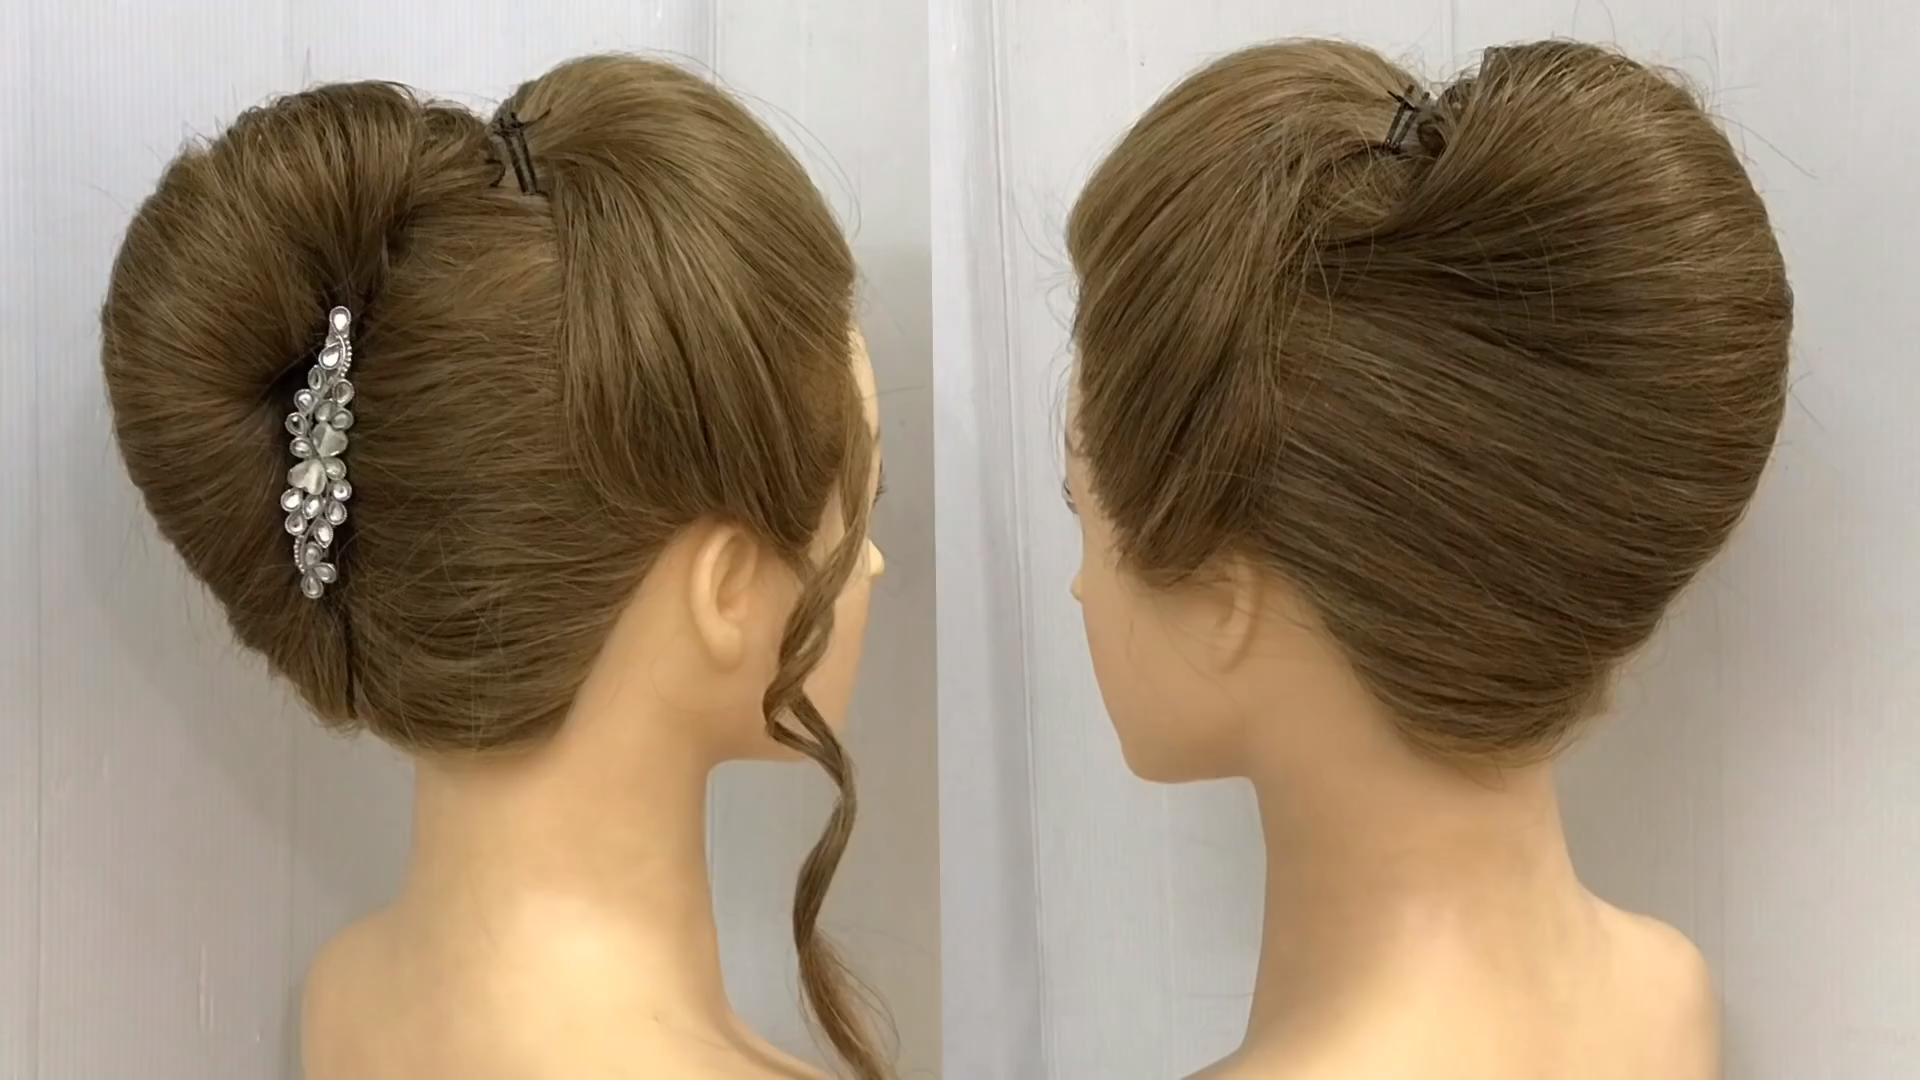 French Bun Hairstyle With Trick How To Make French Roll Hairstyle French Twist Hairstyle Trick Easy Way T French Roll Hairstyle Bun Hairstyles Roll Hairstyle